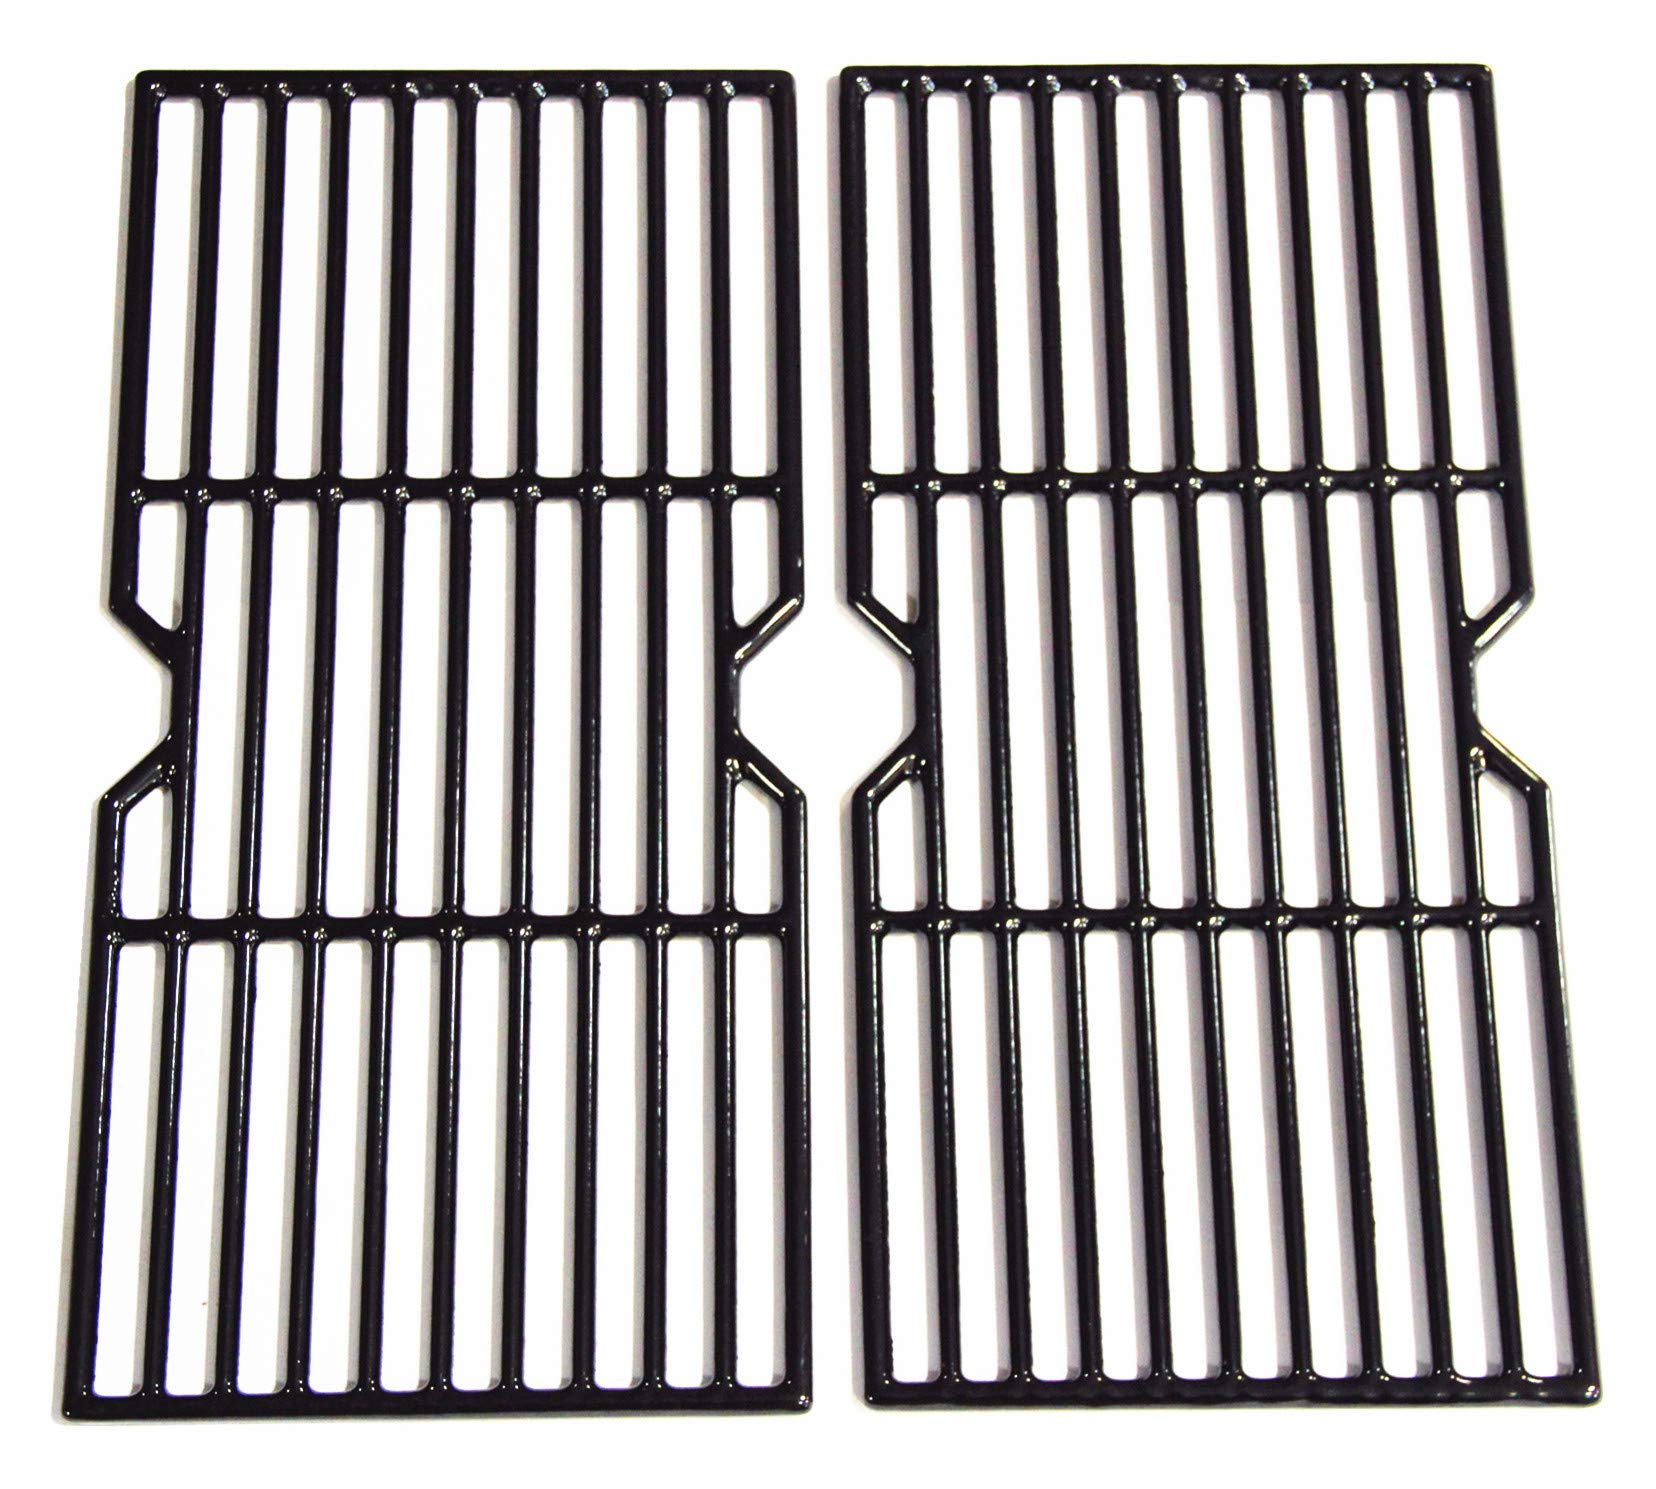 Hongso PCF123 Porcelain Coated Cast Iron Cooking Grid Grates Replacement for Select Gas Grill Models by Kenmore, Charbroil, Thermos, Set of 2 by Hongso